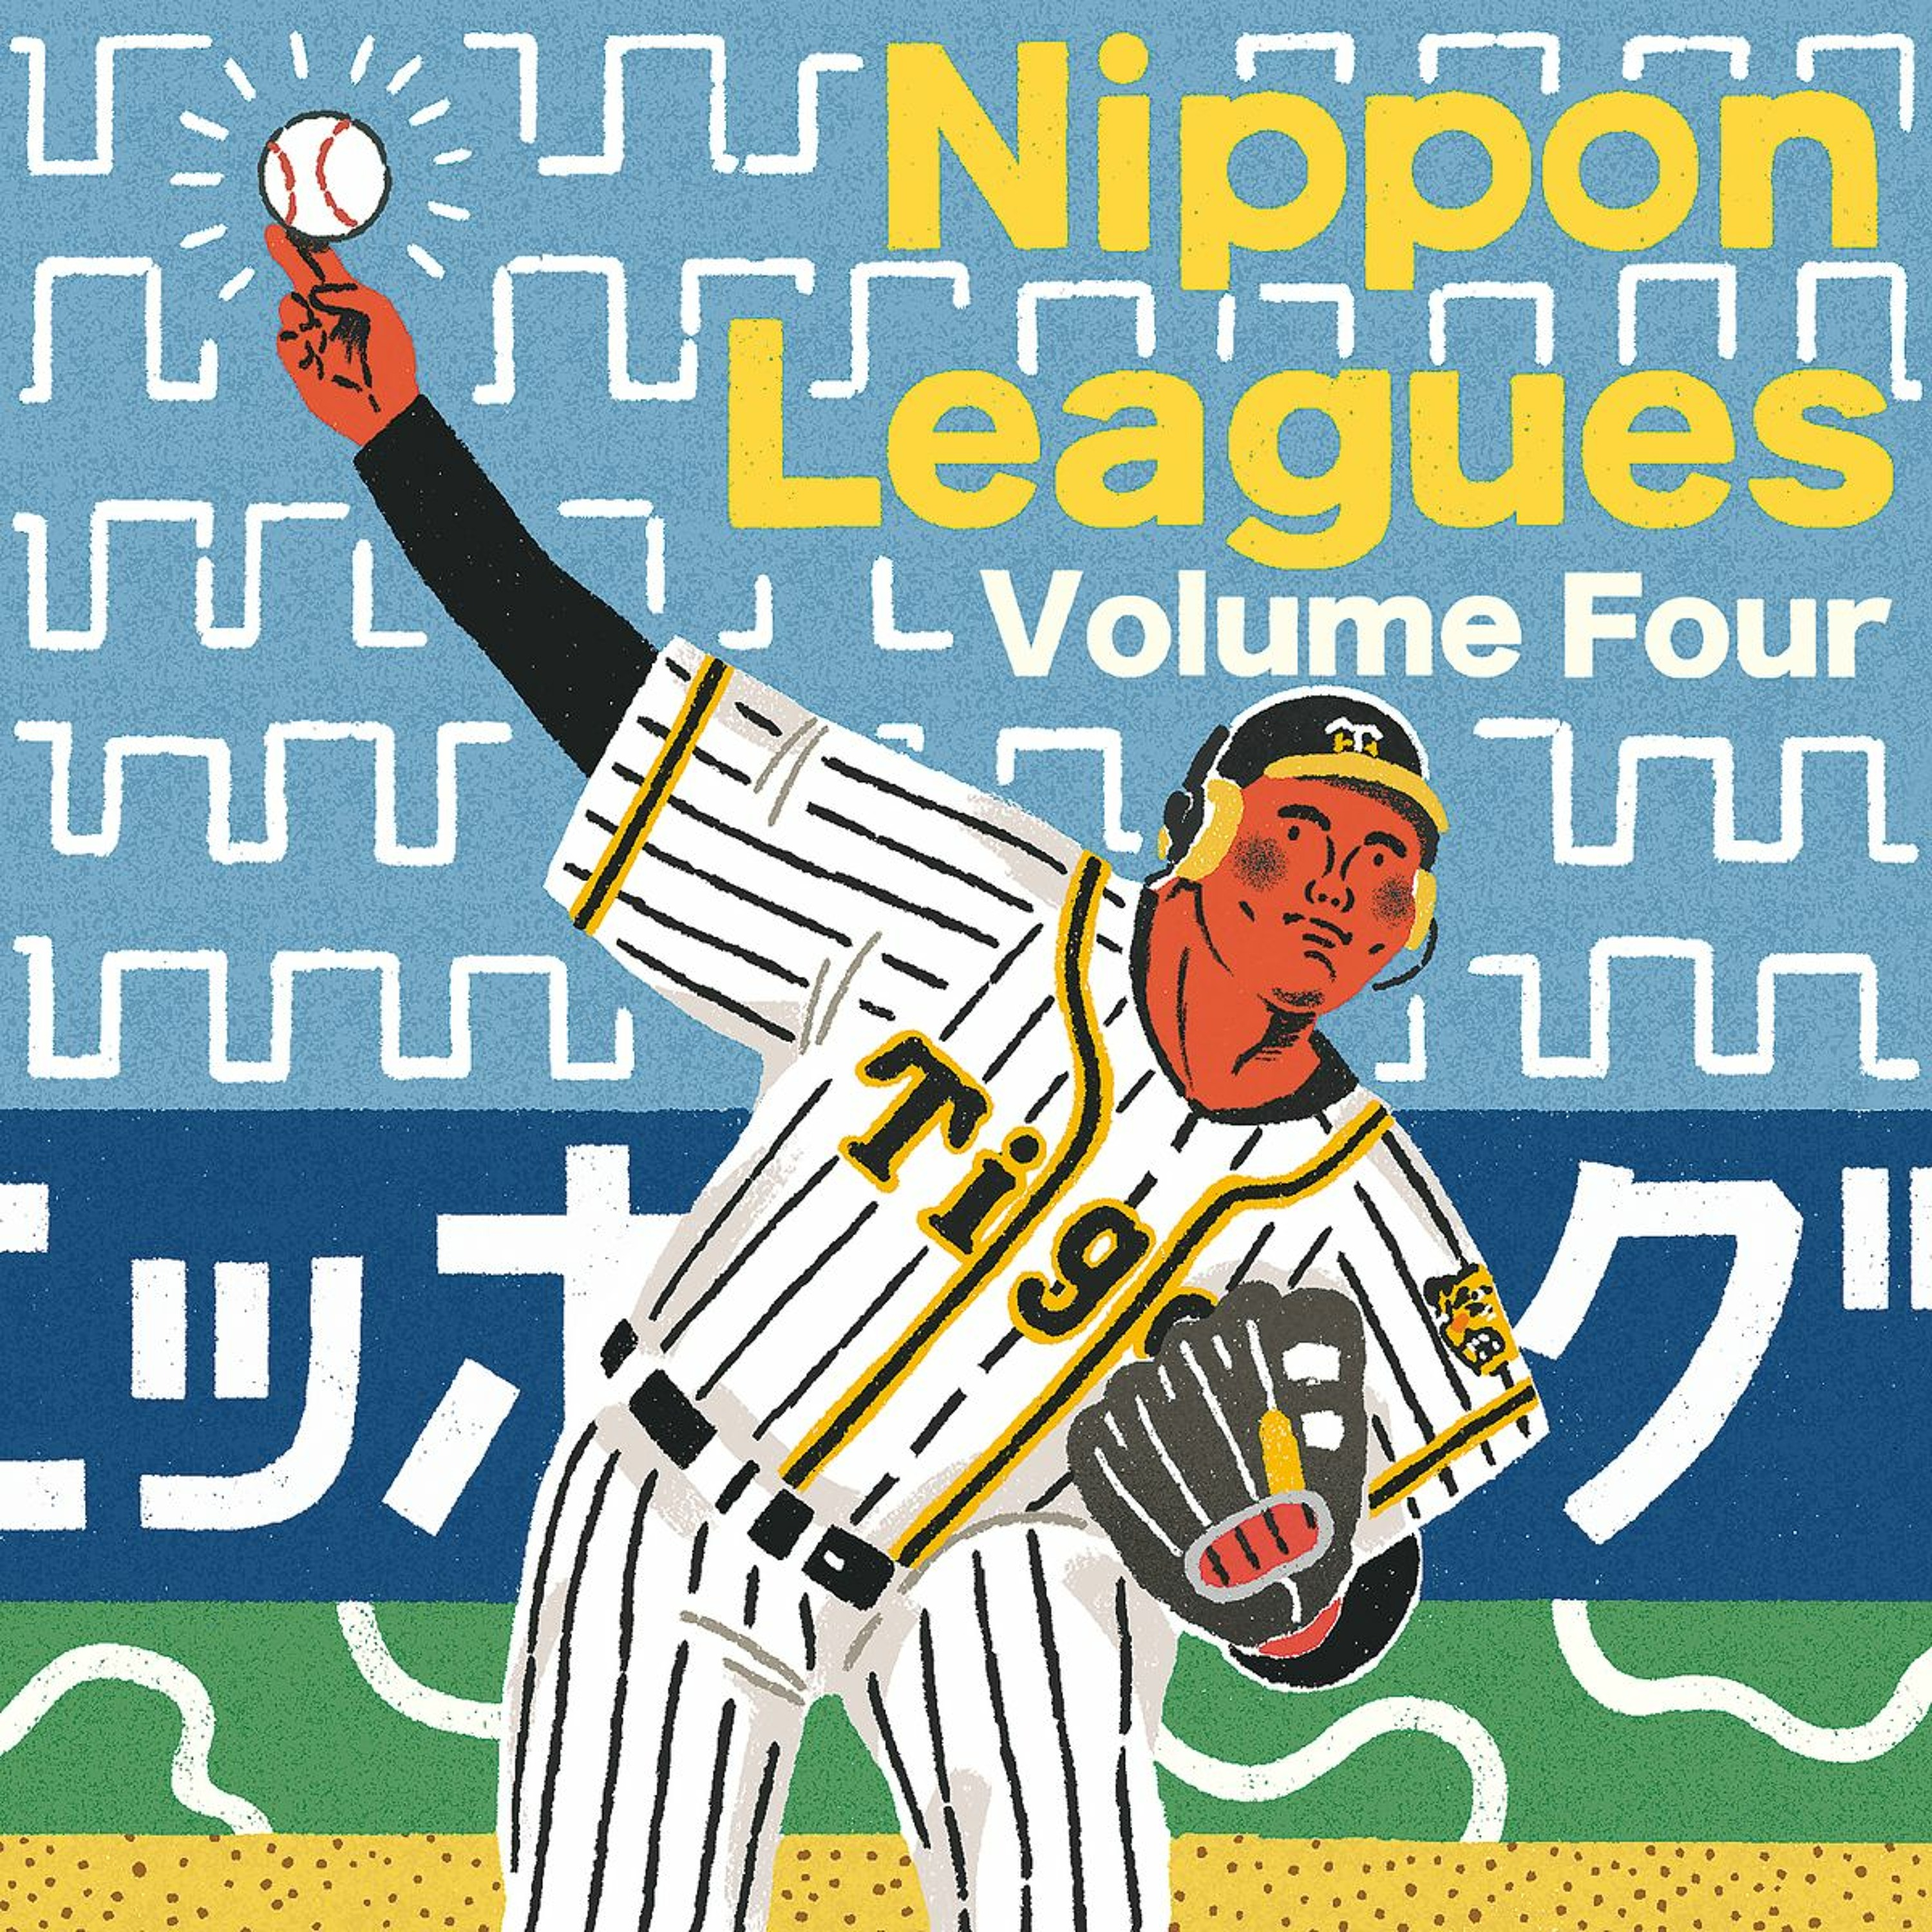 Mix of the Week #396: Nippon Leagues Vol 4